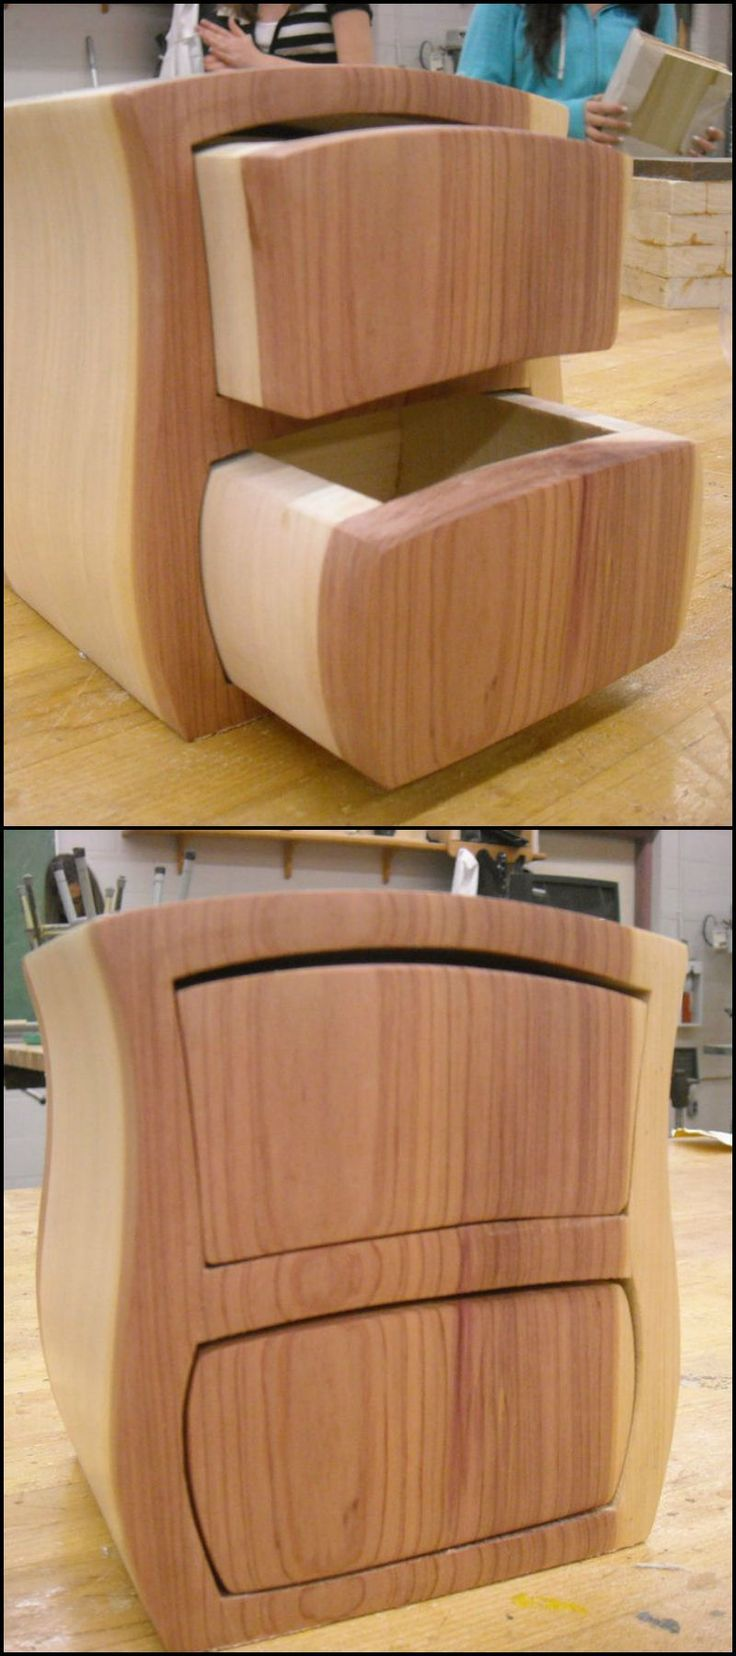 How to make a bandsaw box even